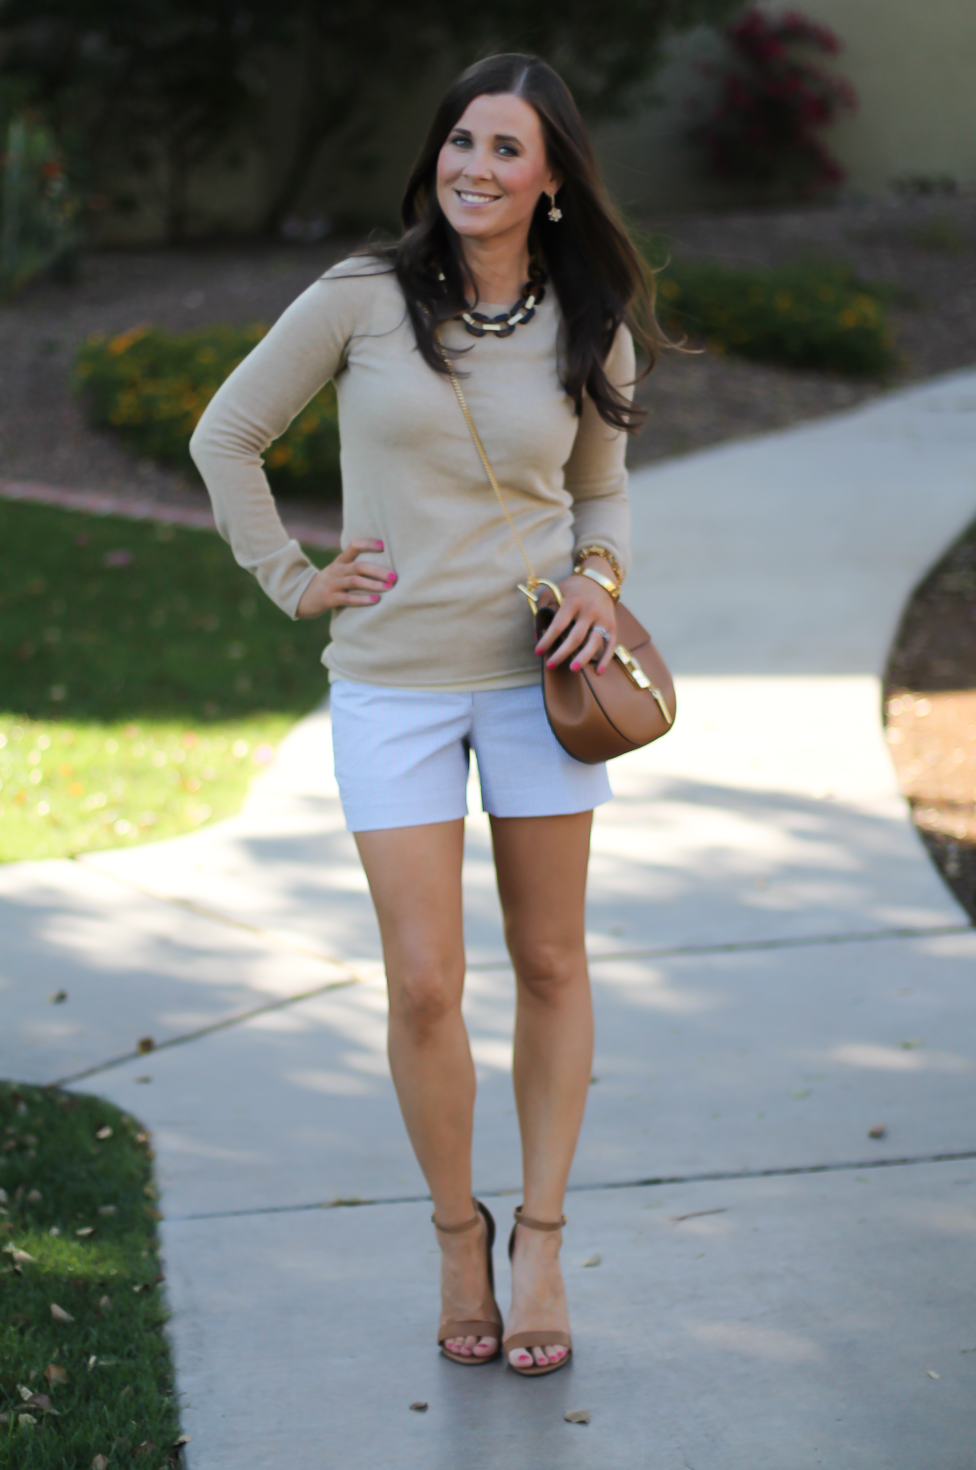 Seersucker Shorts, Tan Cashmere Sweater, Tan Leather Ankle Strap Heels, Tan Leather Chain Strap Bag, Ann Taylor, J.Crew, Steve Madden, Chloe